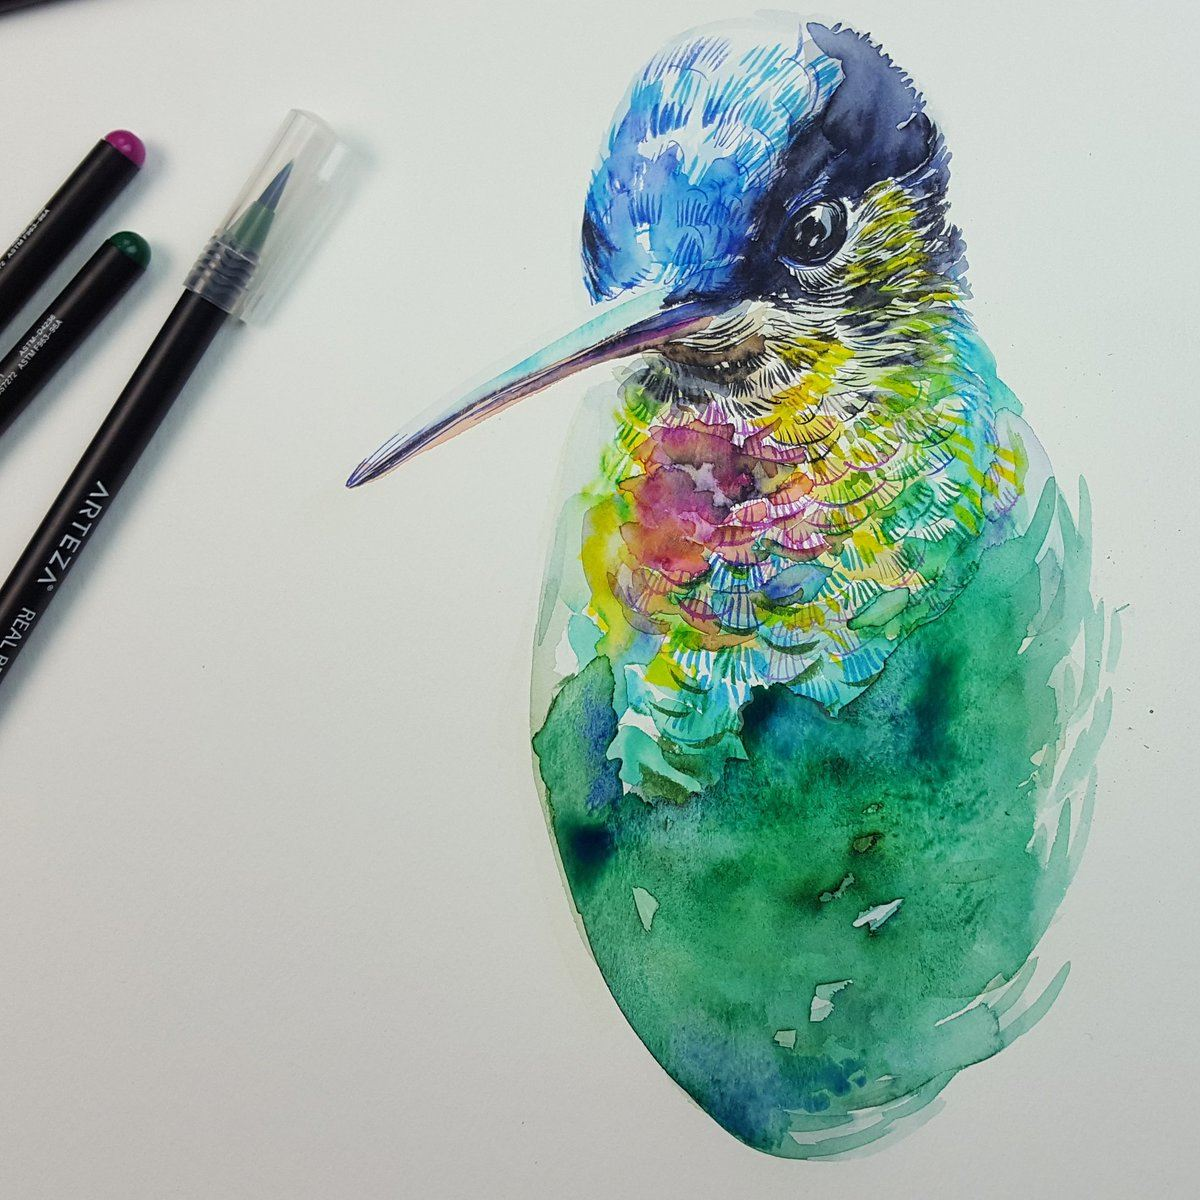 watercolor pens hummingbird.jpg